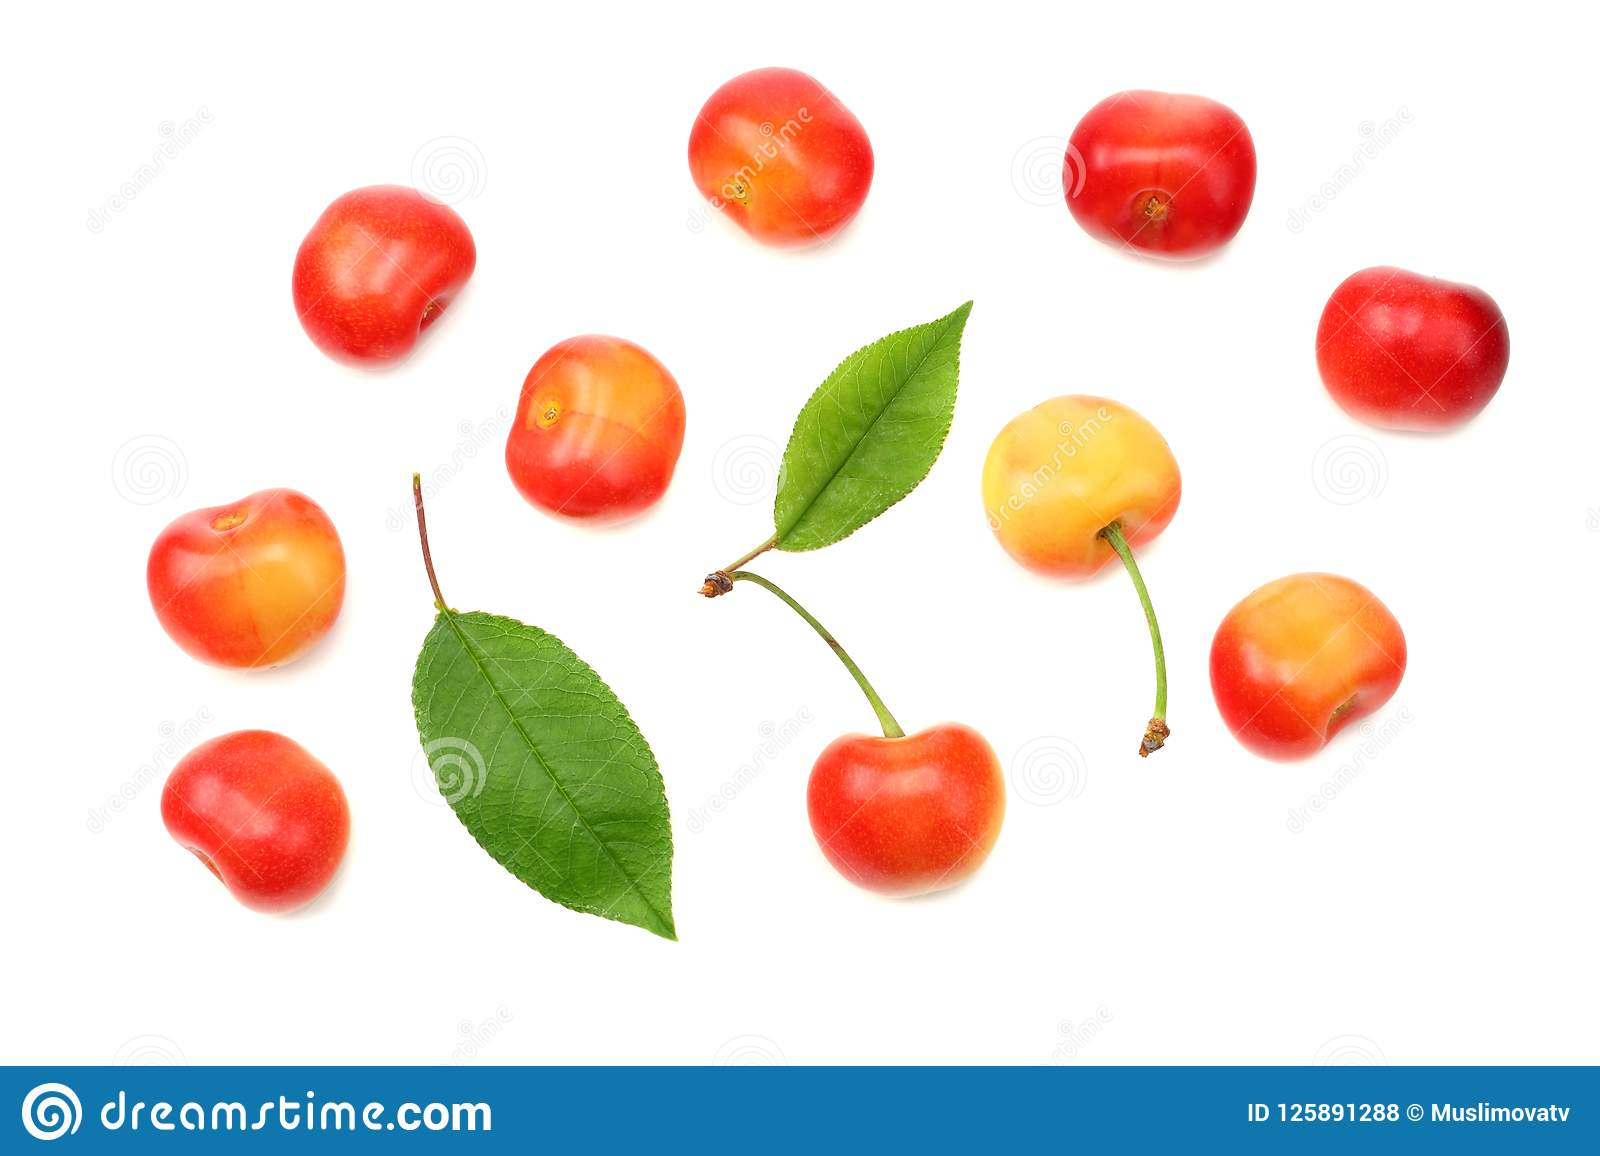 Red And Yellow Cherry With Green Leaf Isolated On White